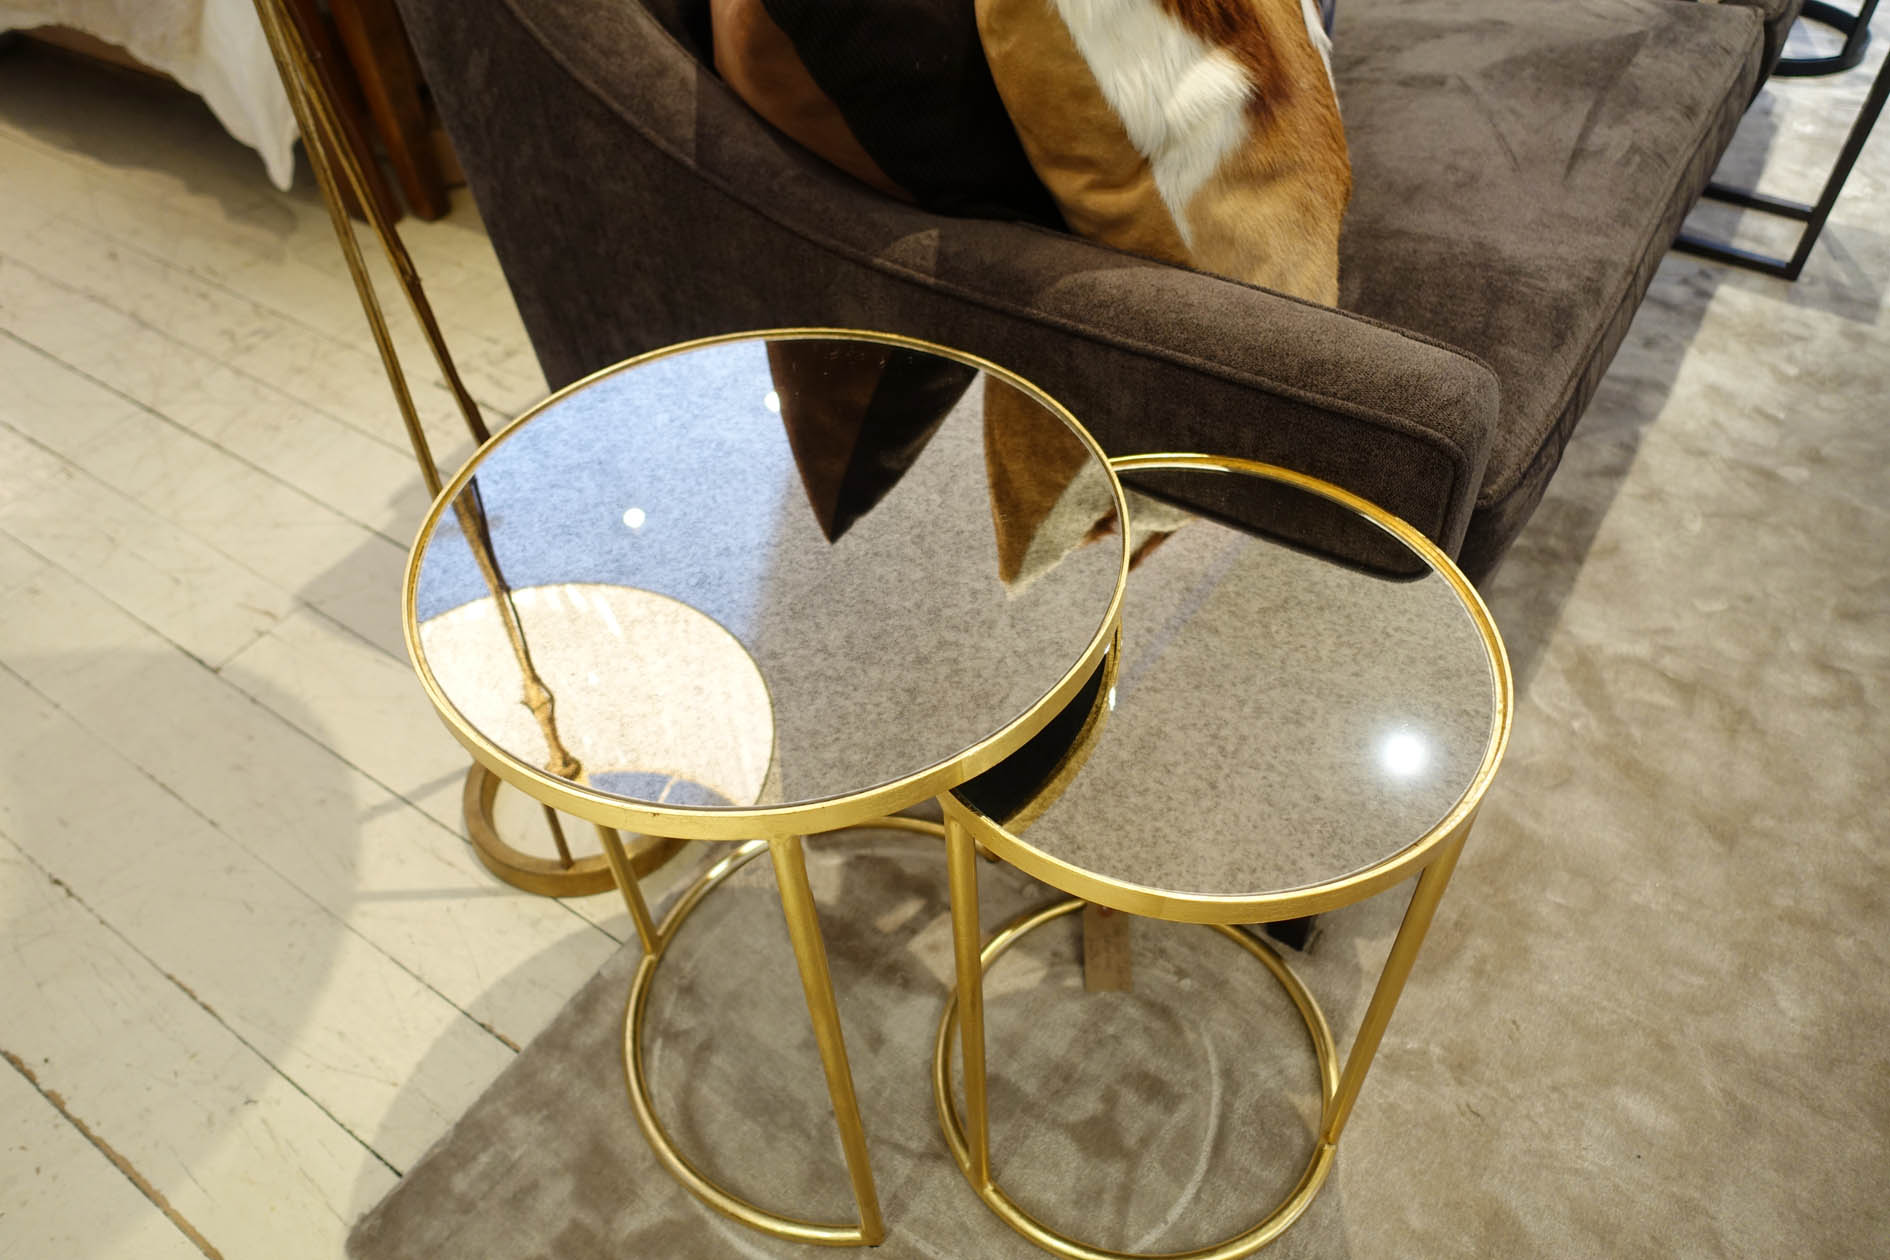 The  Golden table set  in gold leaf and antique mirror.